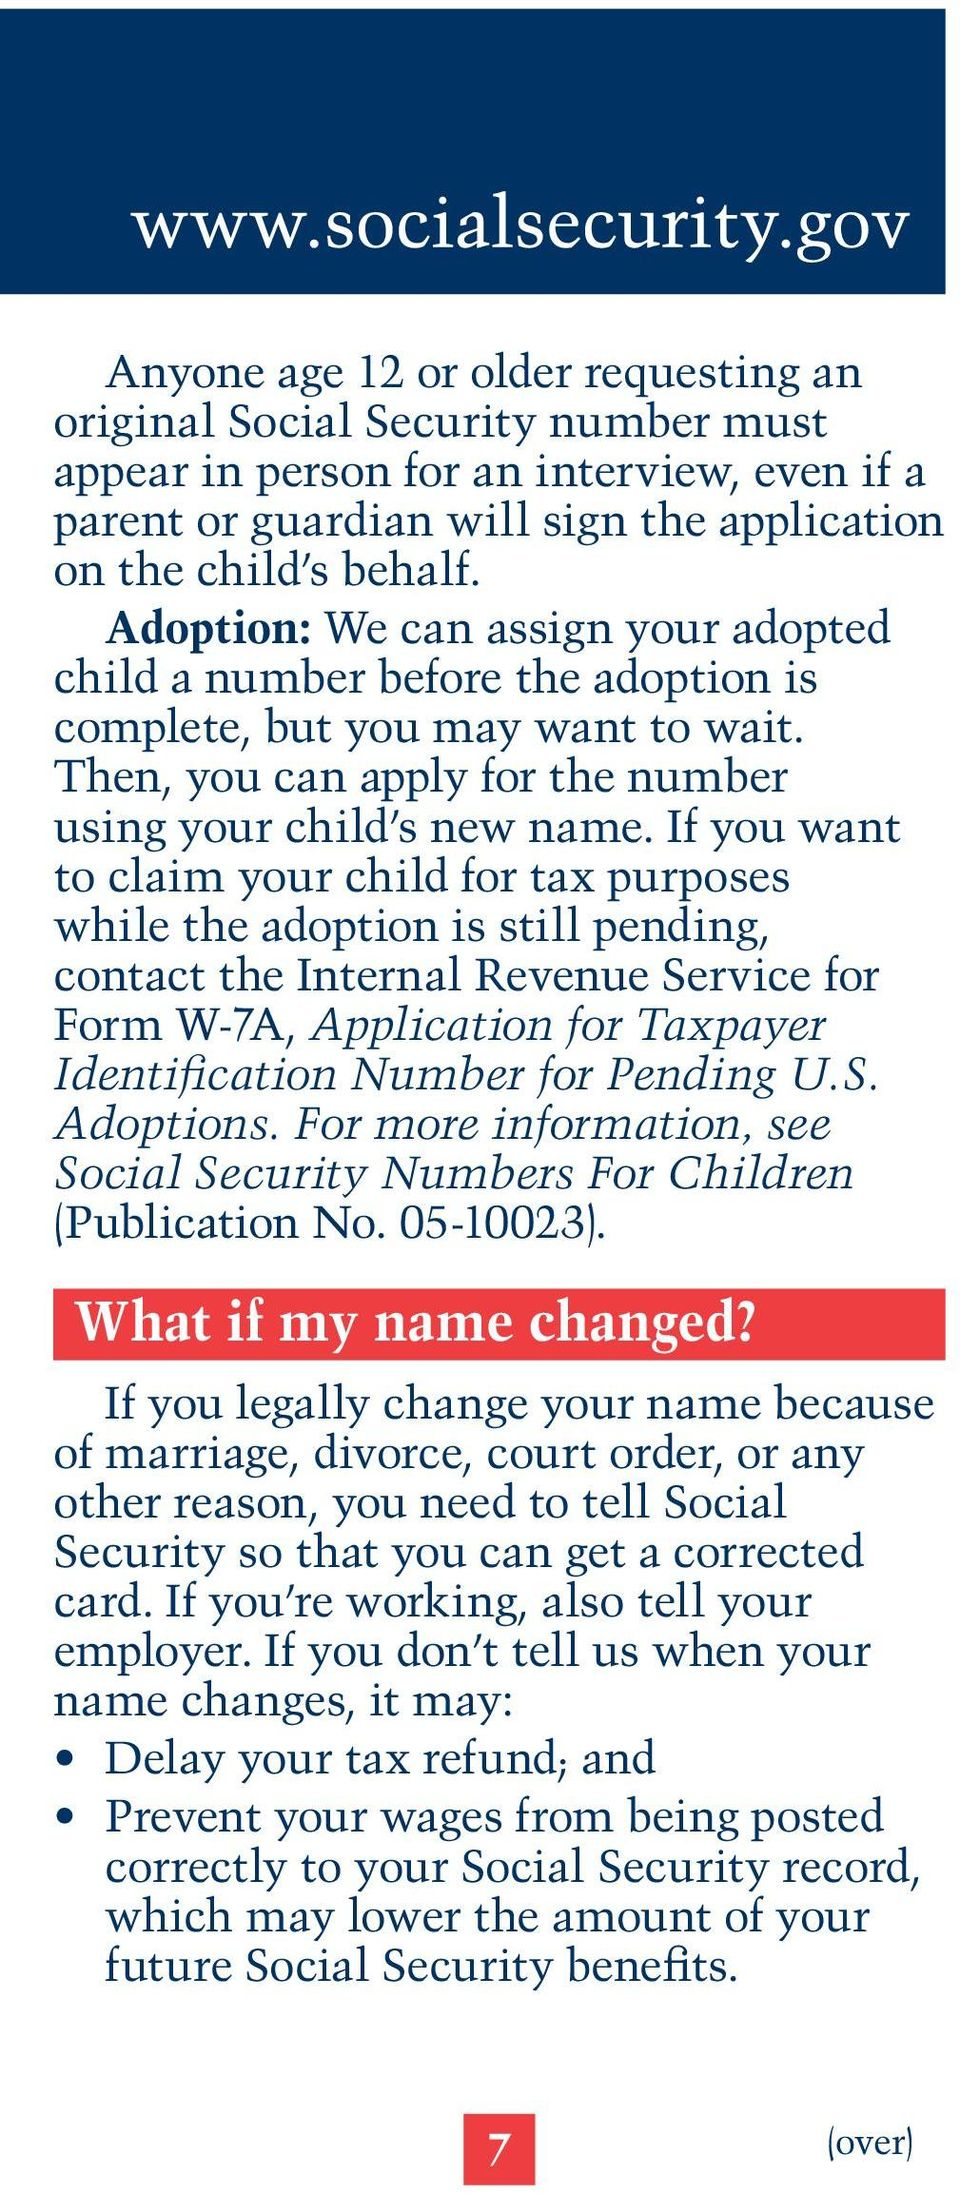 If you want to claim your child for tax purposes while the adoption is still pending, contact the Internal Revenue Service for Form W-7A, Application for Taxpayer Identification Number for Pending U.